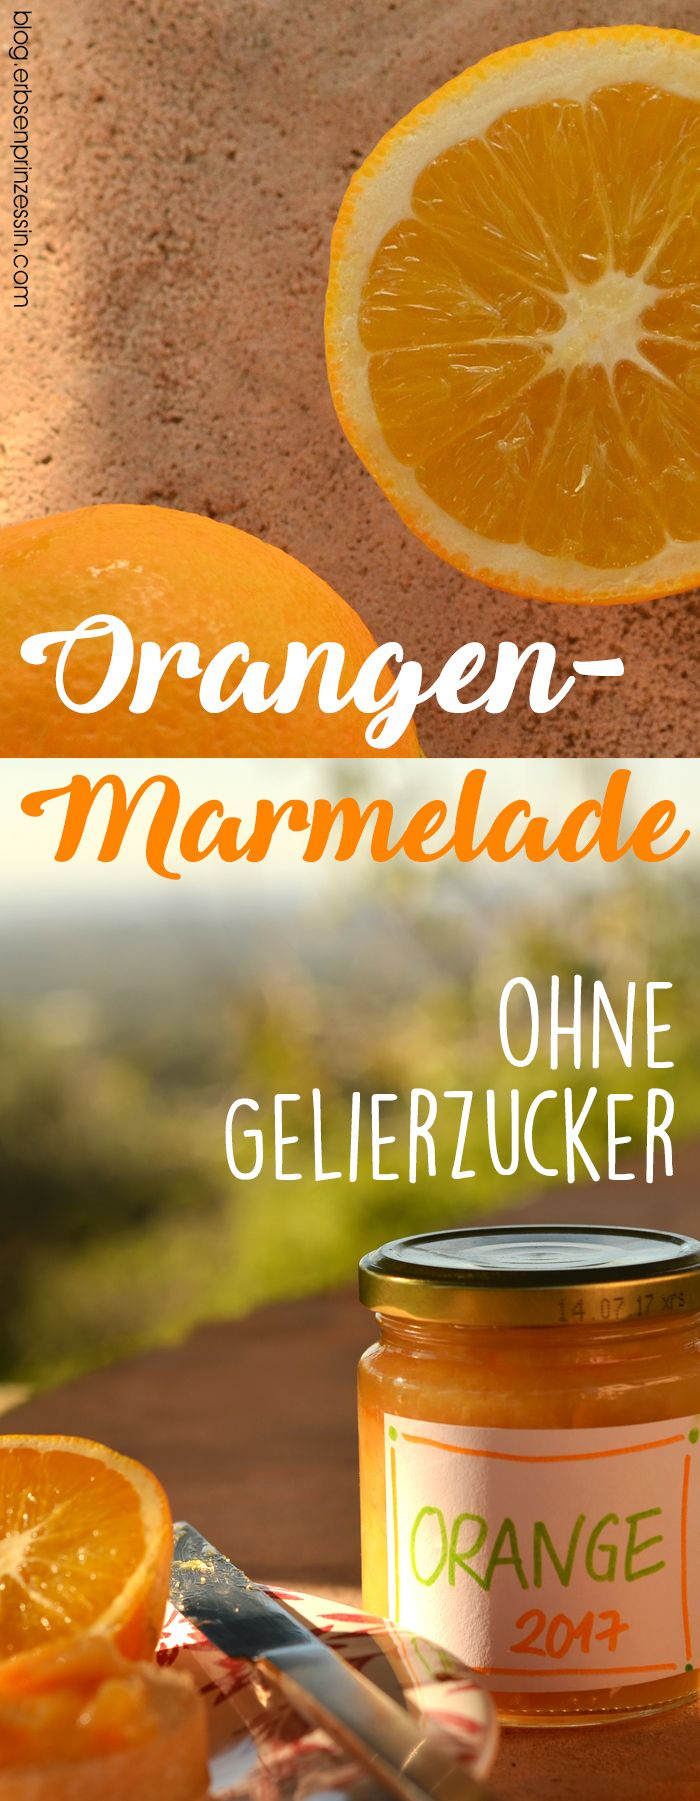 urlaubsmitbringsel orangenmarmelade ohne gelierzucker rezept pins vom erbsenprinzessin blog. Black Bedroom Furniture Sets. Home Design Ideas